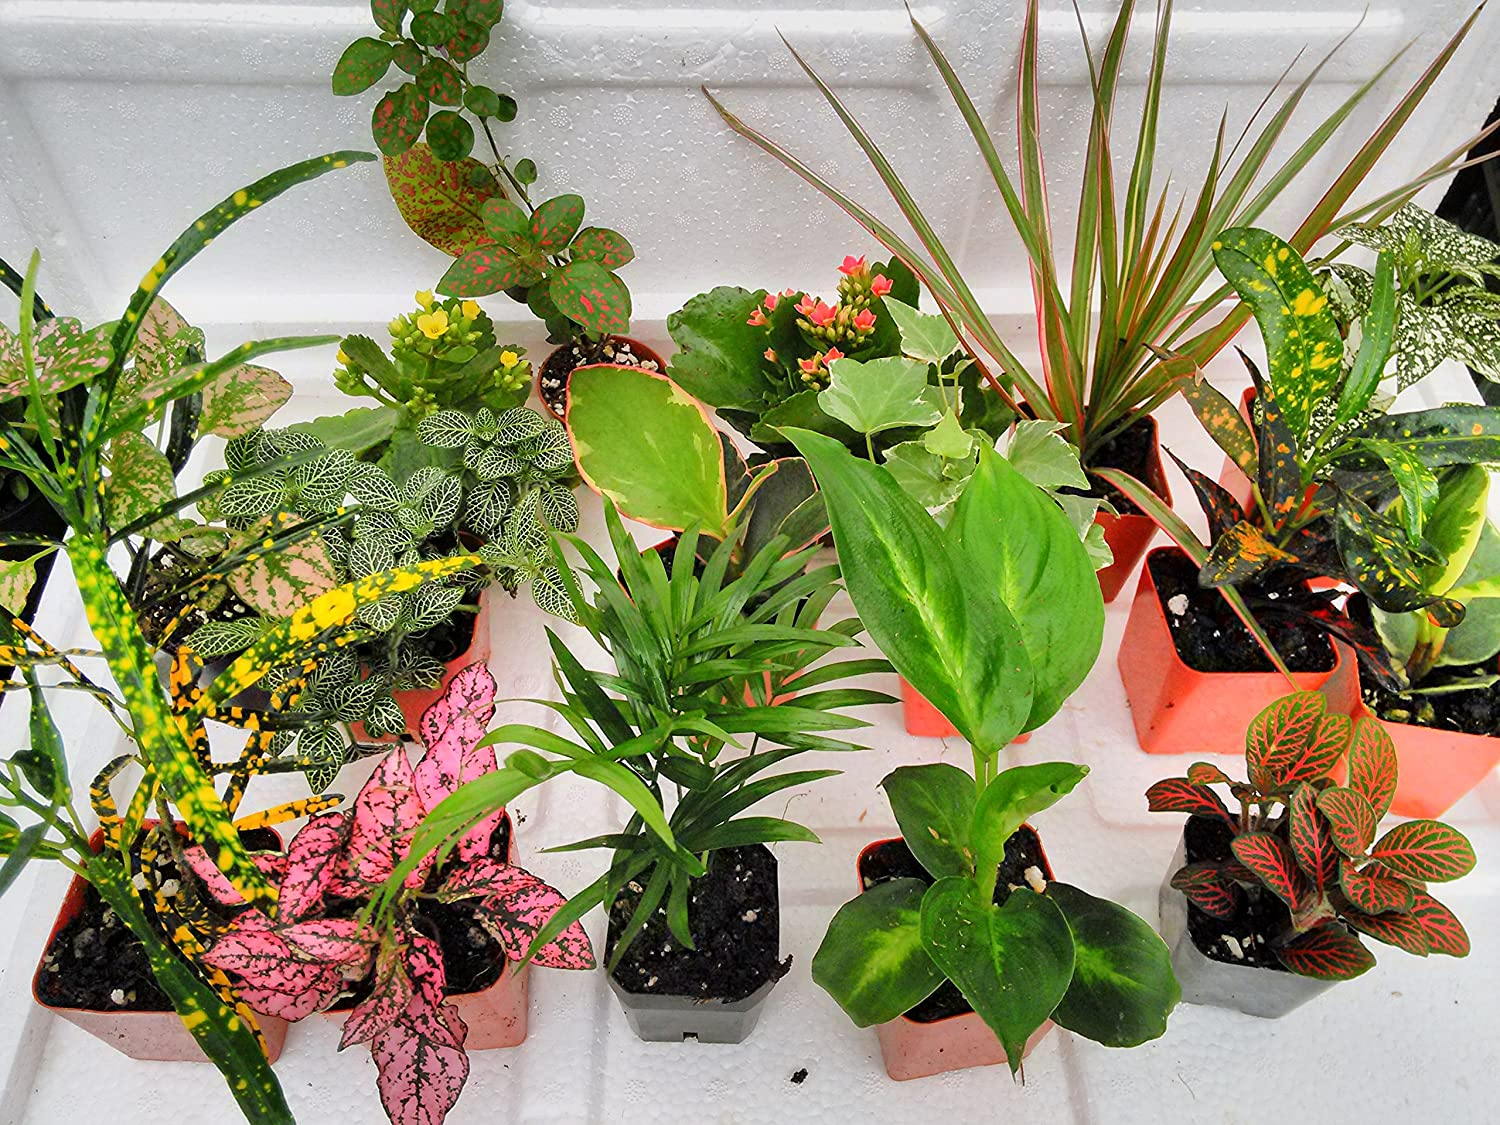 Terrarium & Fairy Garden Plants - 5 Plants in 2.5 (Is Approximately 4 to 6 Inches Height of the Plant)